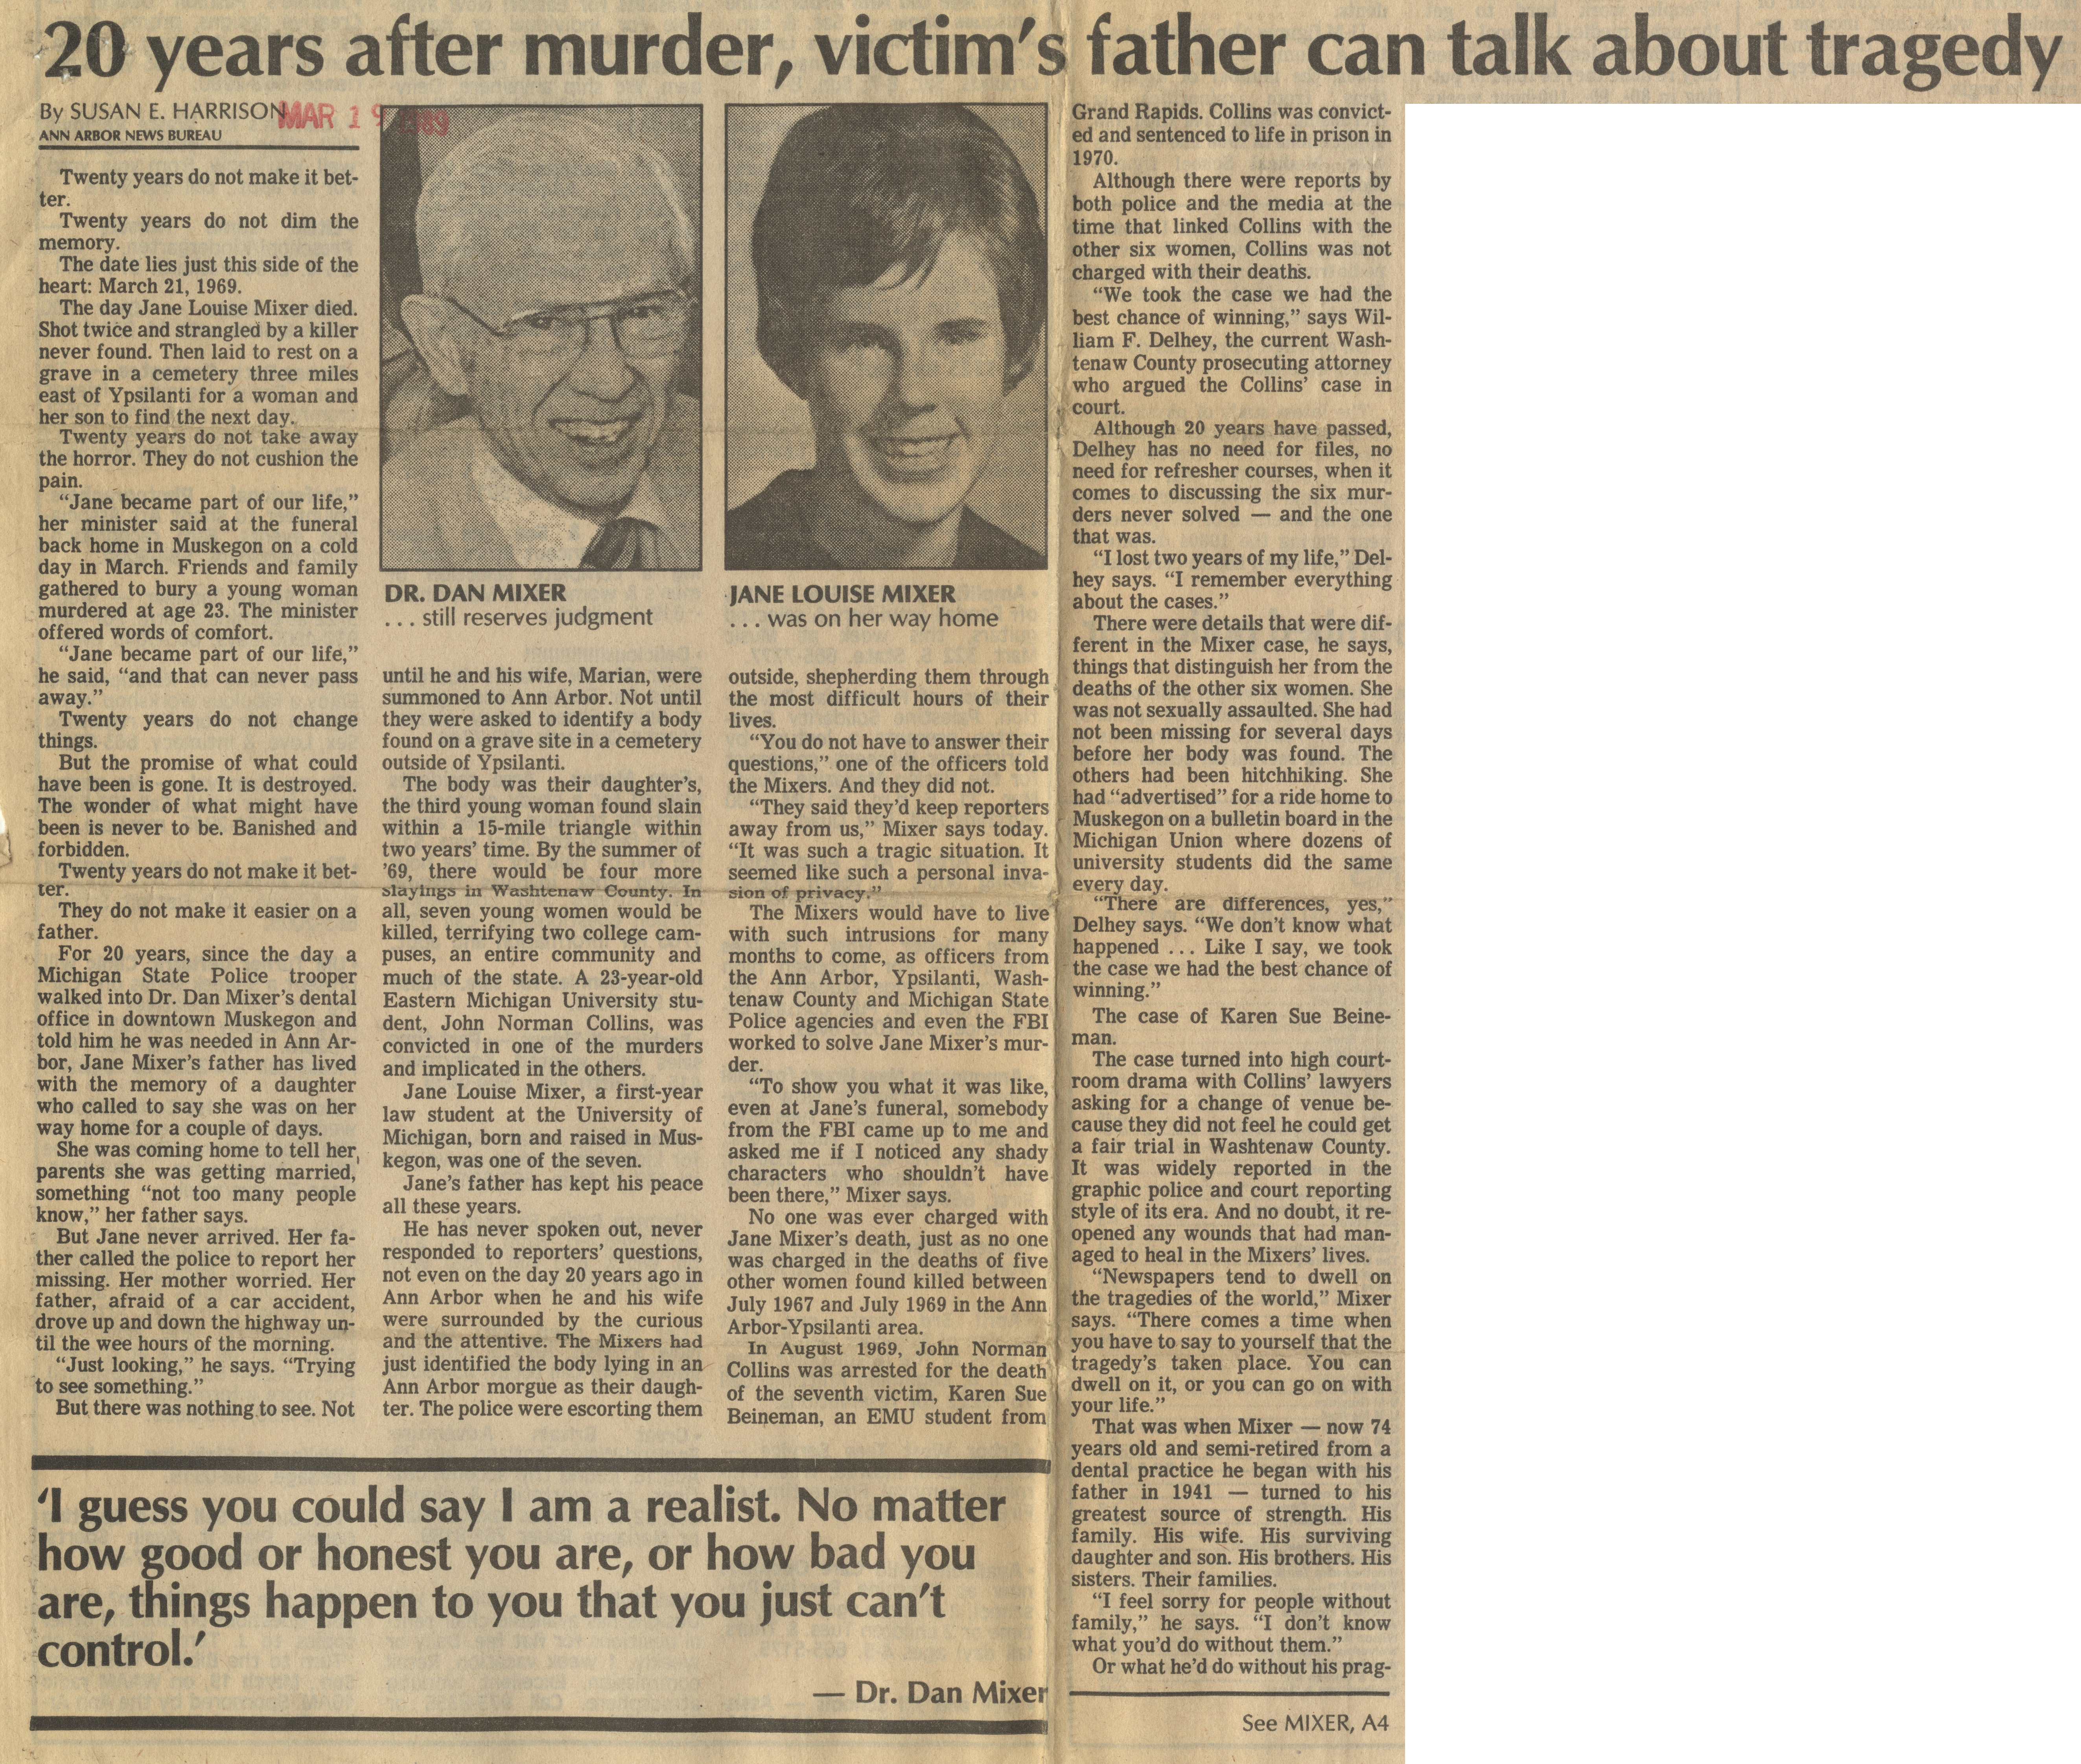 20 years after murder, victim's father can talk about tragedy image